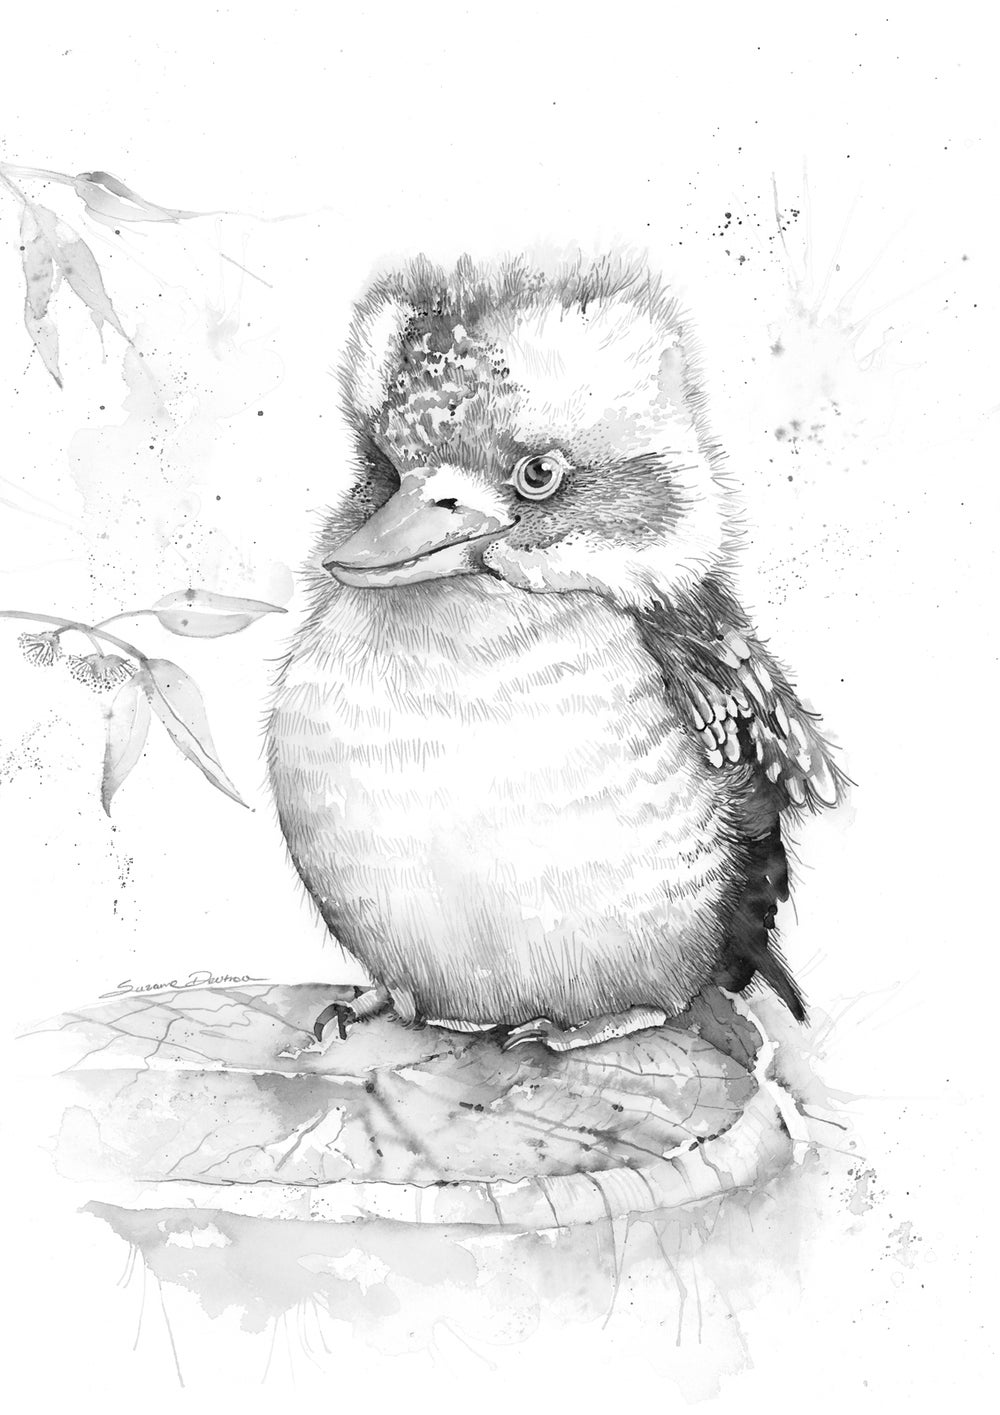 Image of King the baby kookaburra - FREE Shipping within Australia